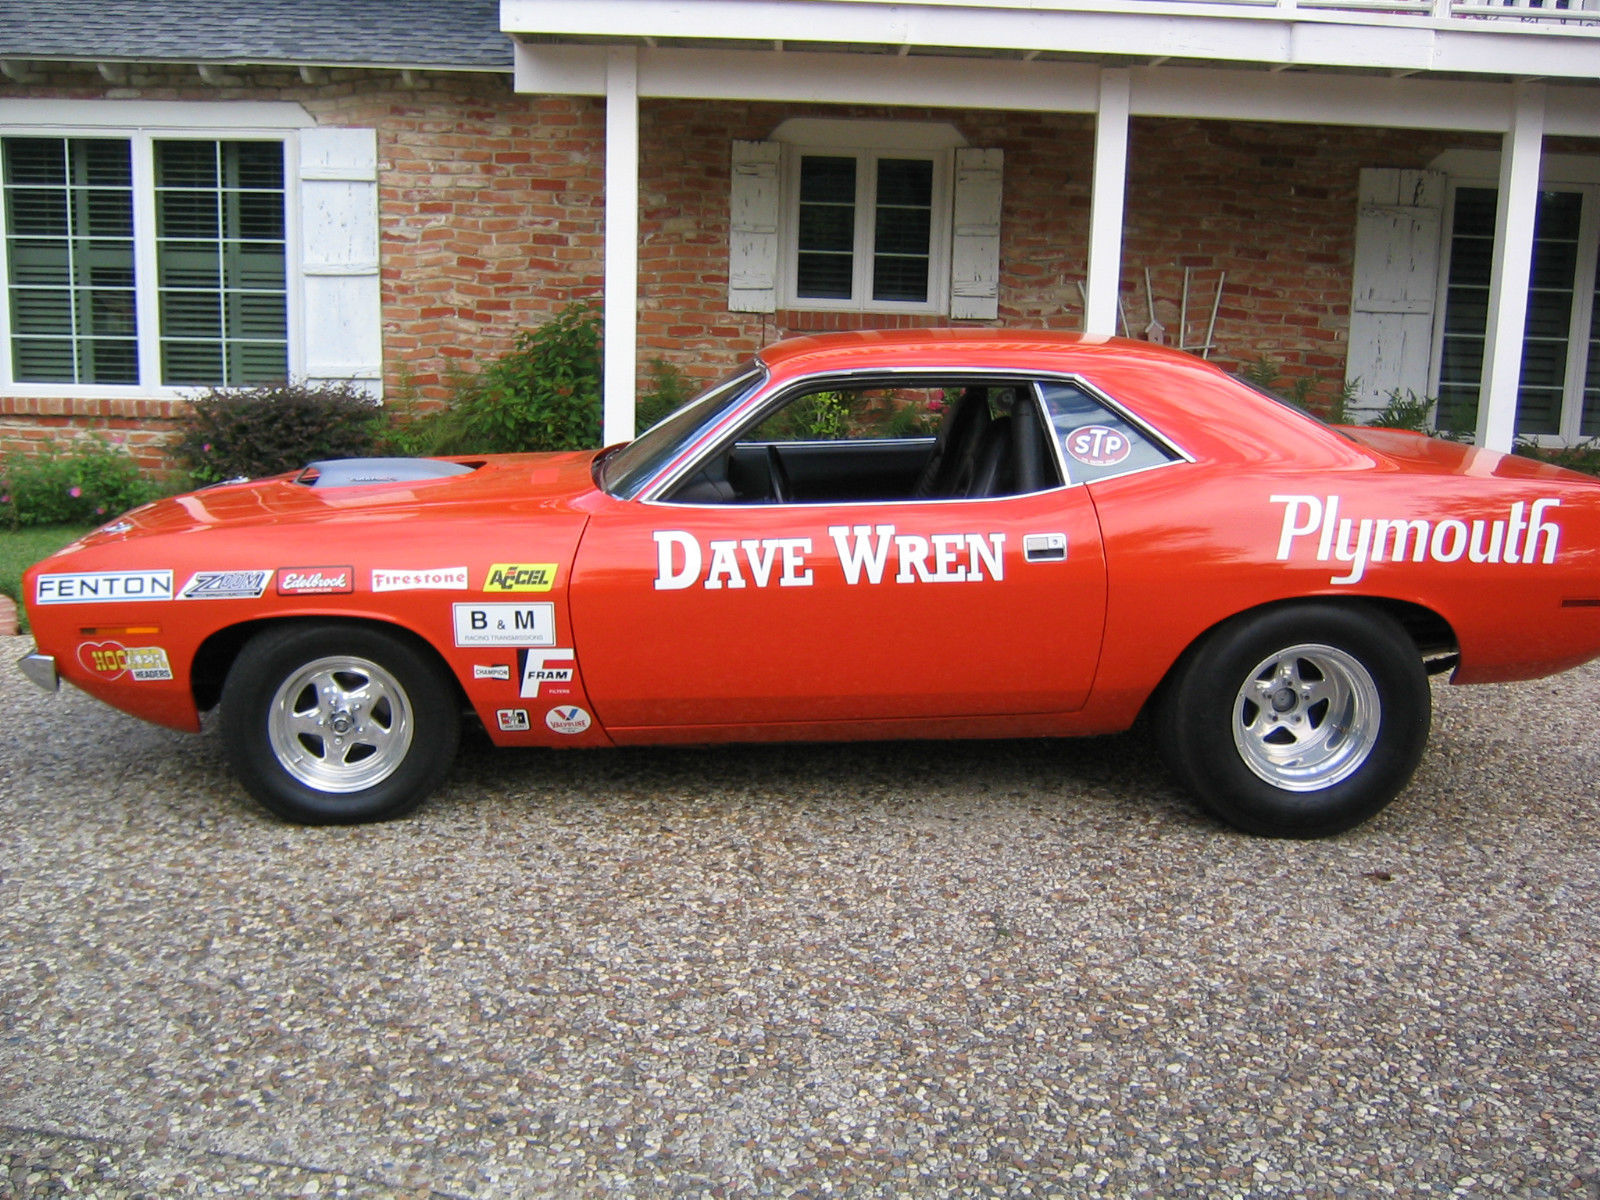 Dave Wren\'s Super Stock 1970 Barracuda on eBay | Mopar Blog